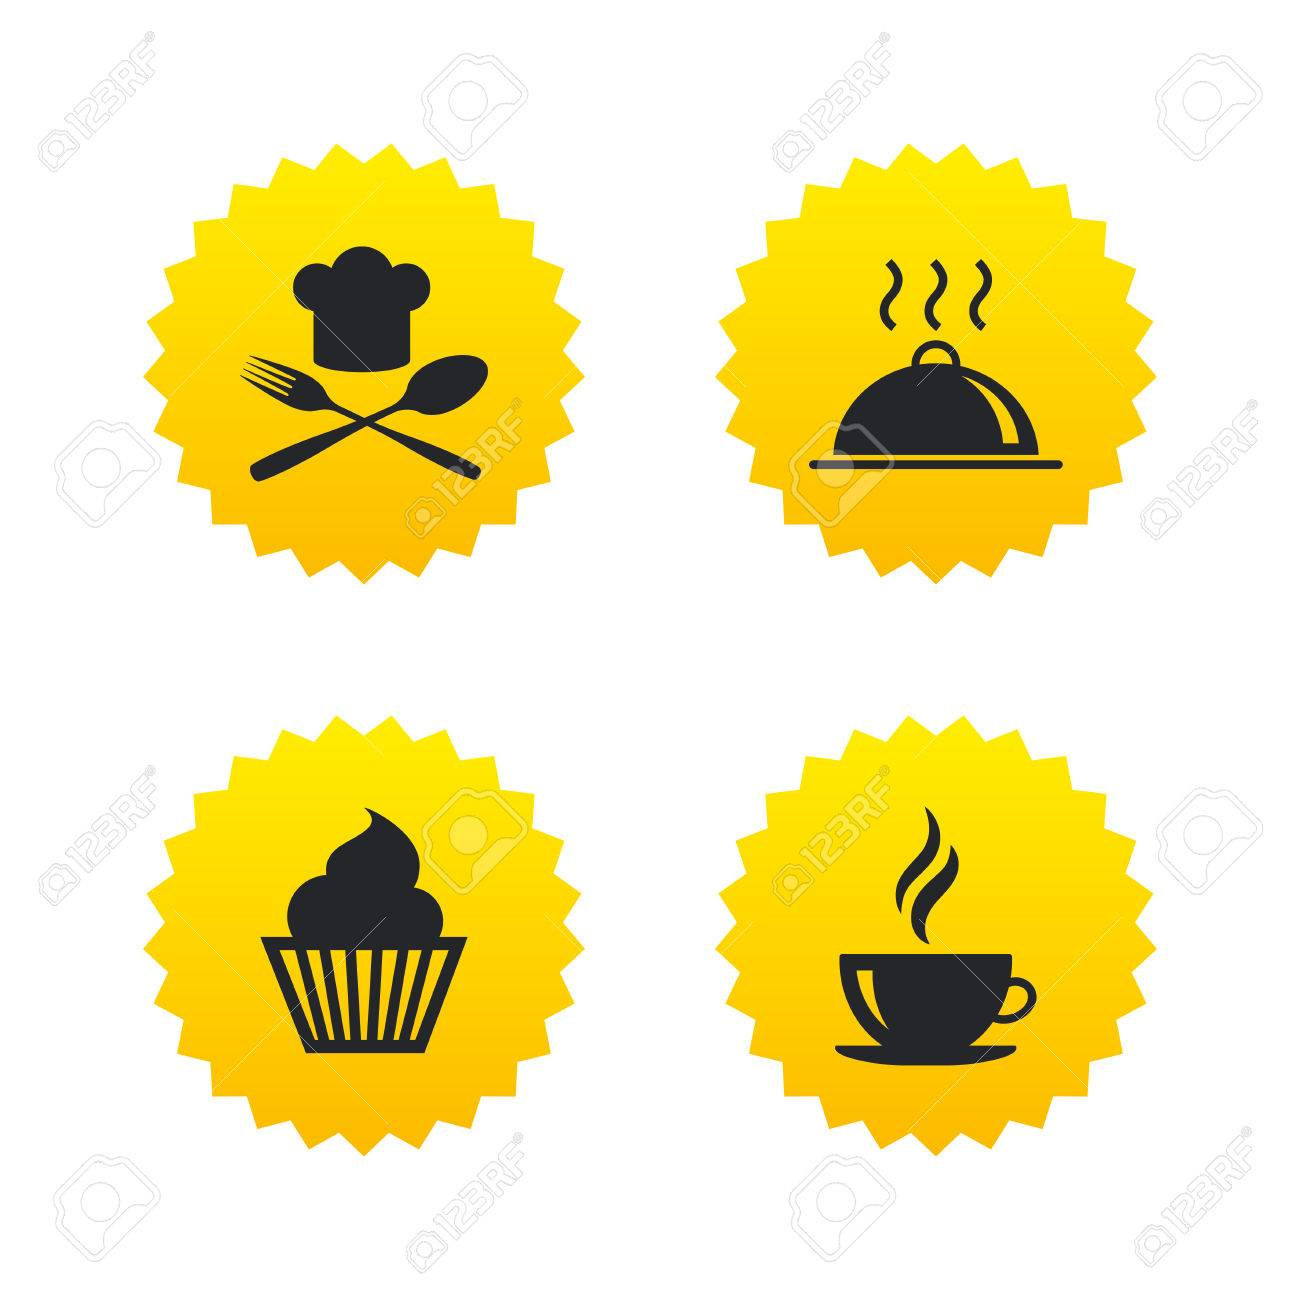 Food And Drink Icons Muffin Cupcake Symbol Fork And Spoon With Chef Hat Sign Hot Coffee Cup Food Platter Serving Yellow Stars Labels With Flat